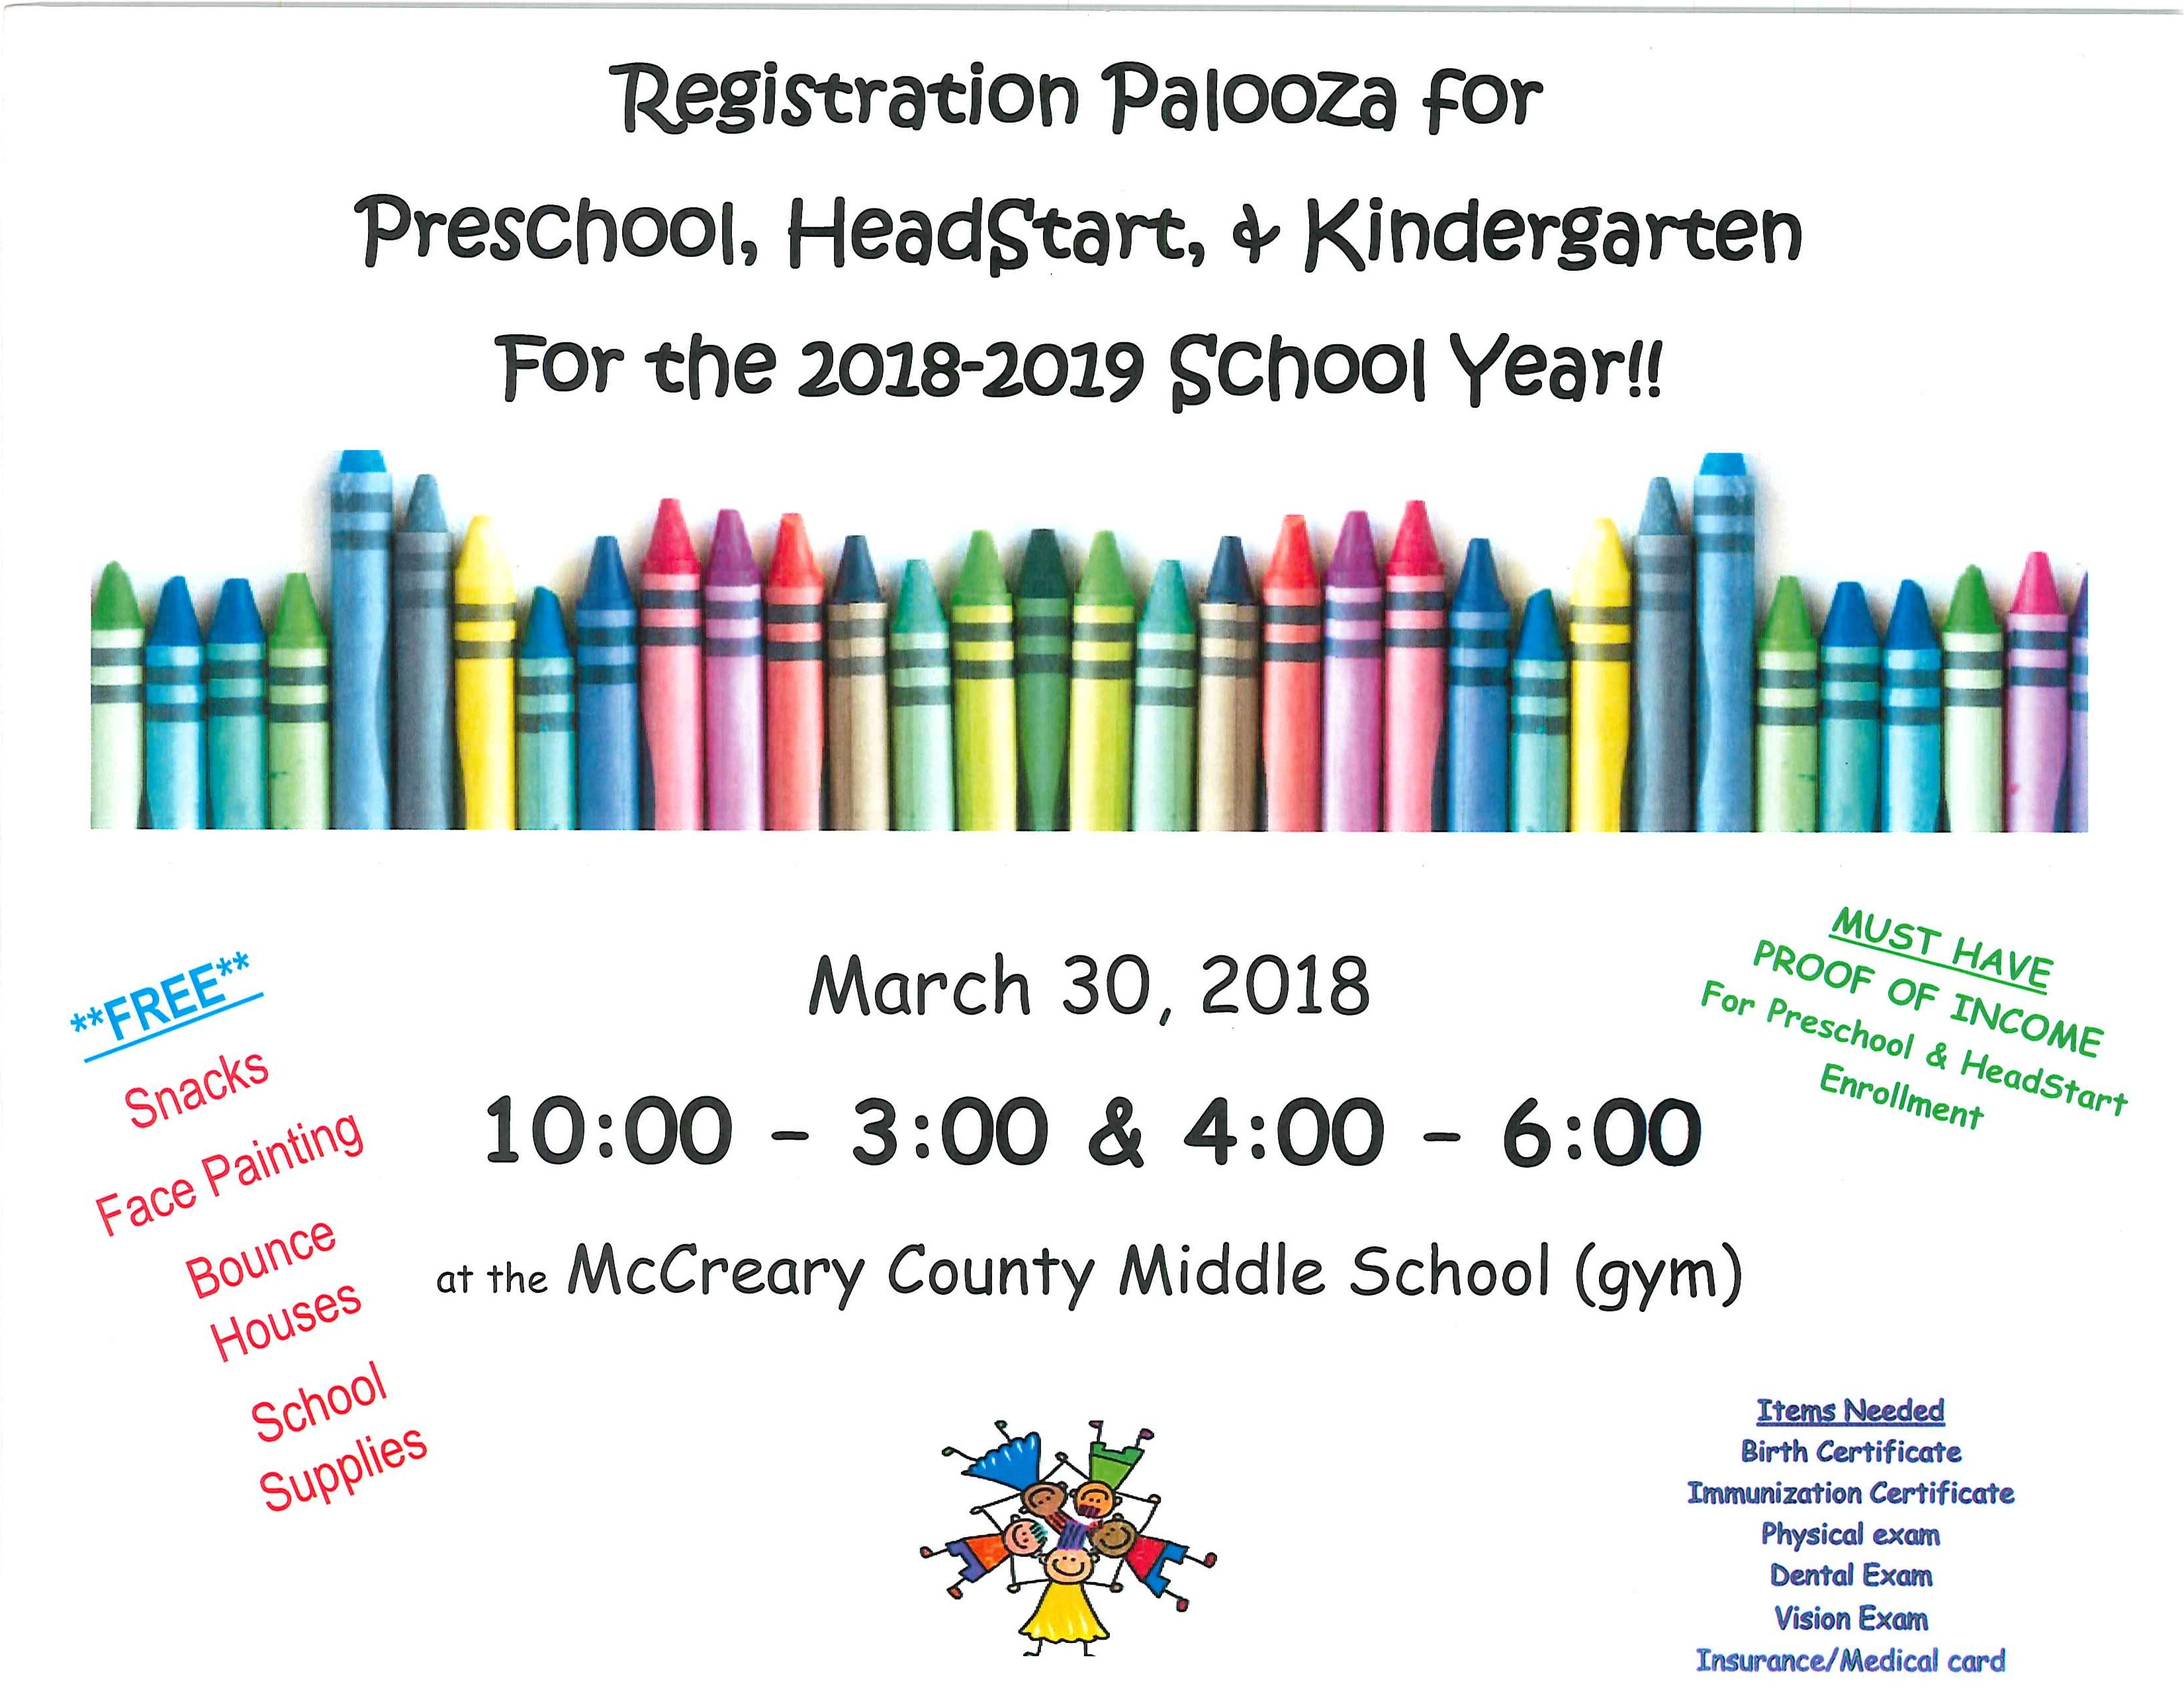 Registration Palooza for Preschool, Headstart, and Kindergarten March 30th, 2018